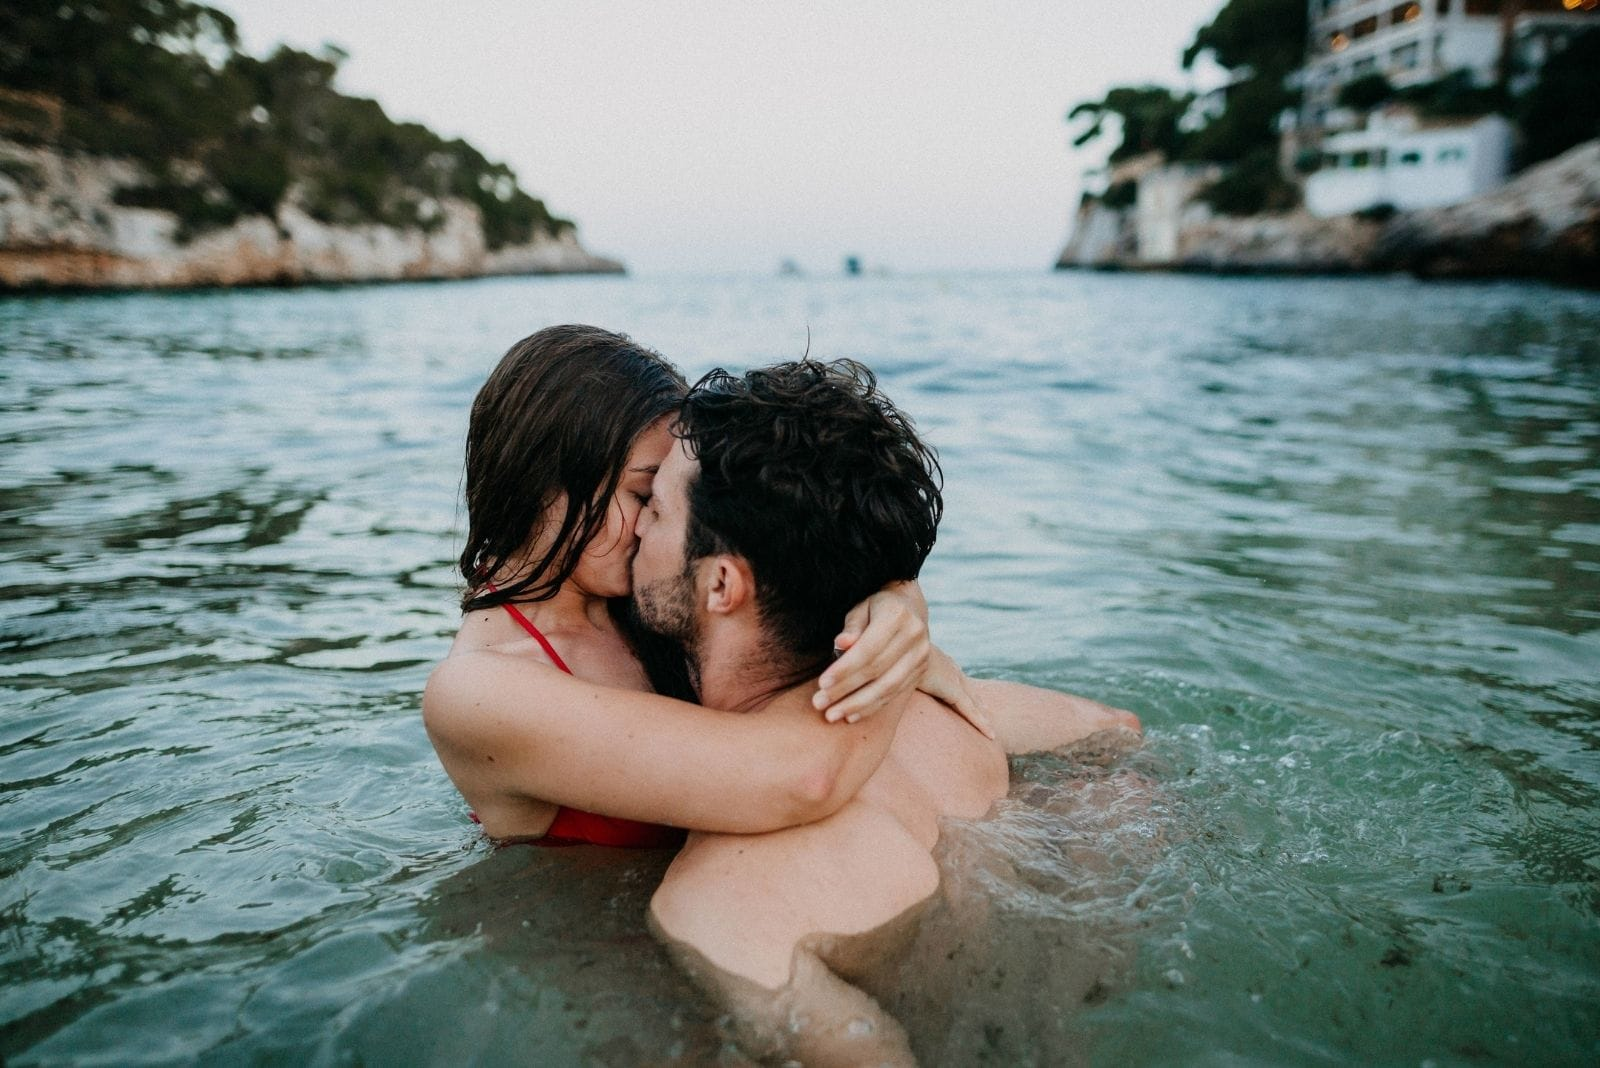 couple in the water kissing passionately wearing swimwear